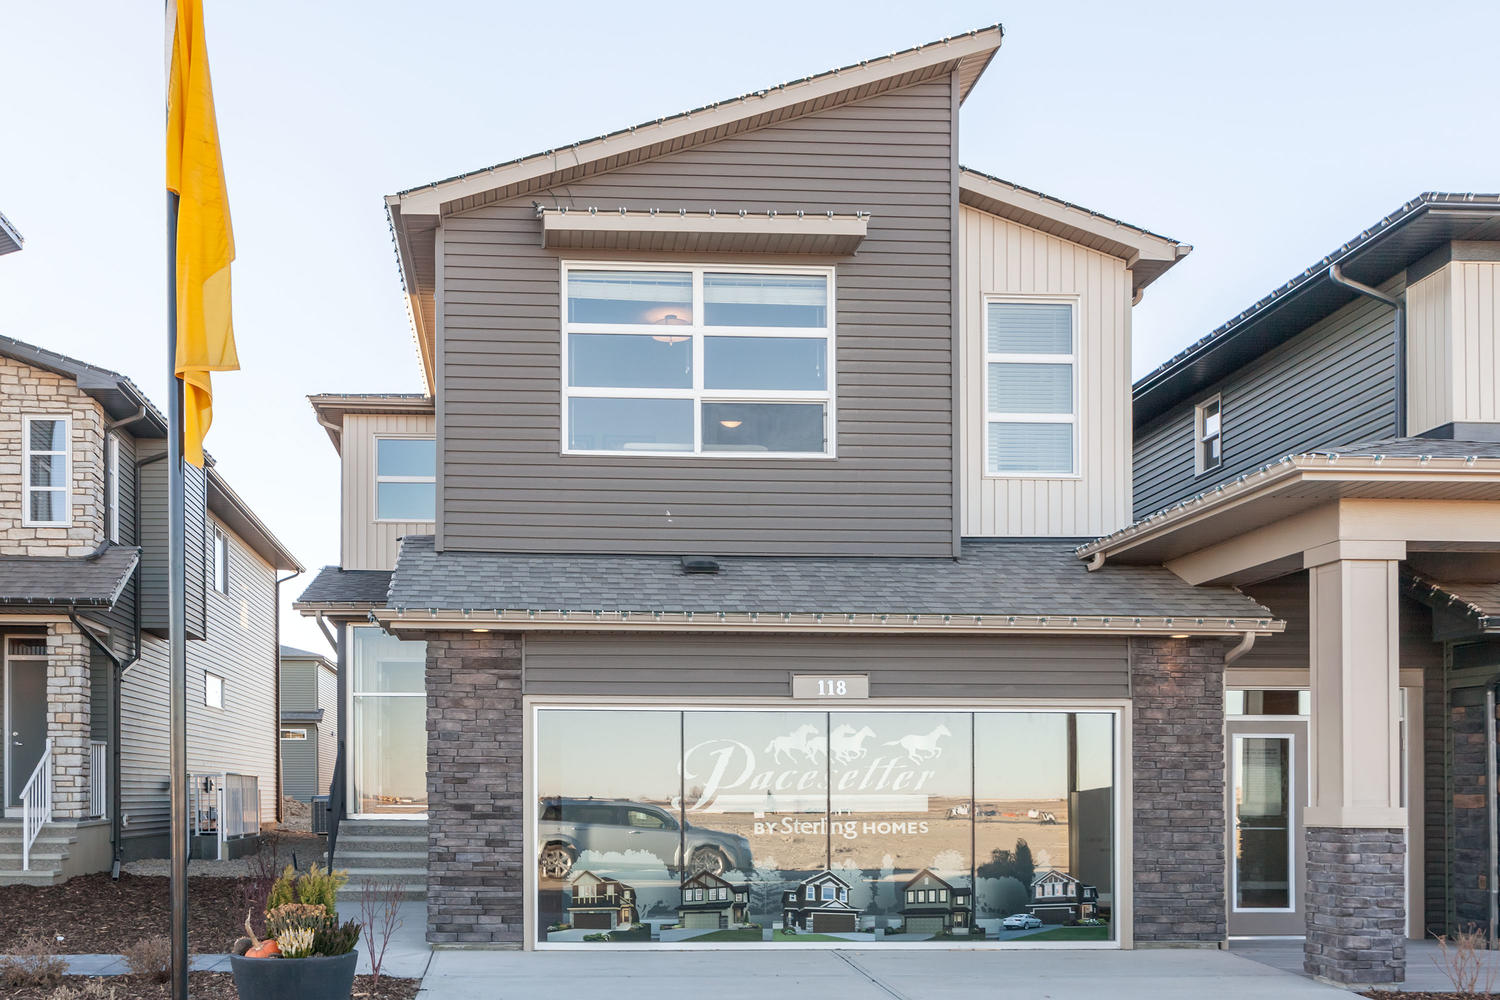 the pacesetter front drive home show home in the cornerstone community calgary northeast.